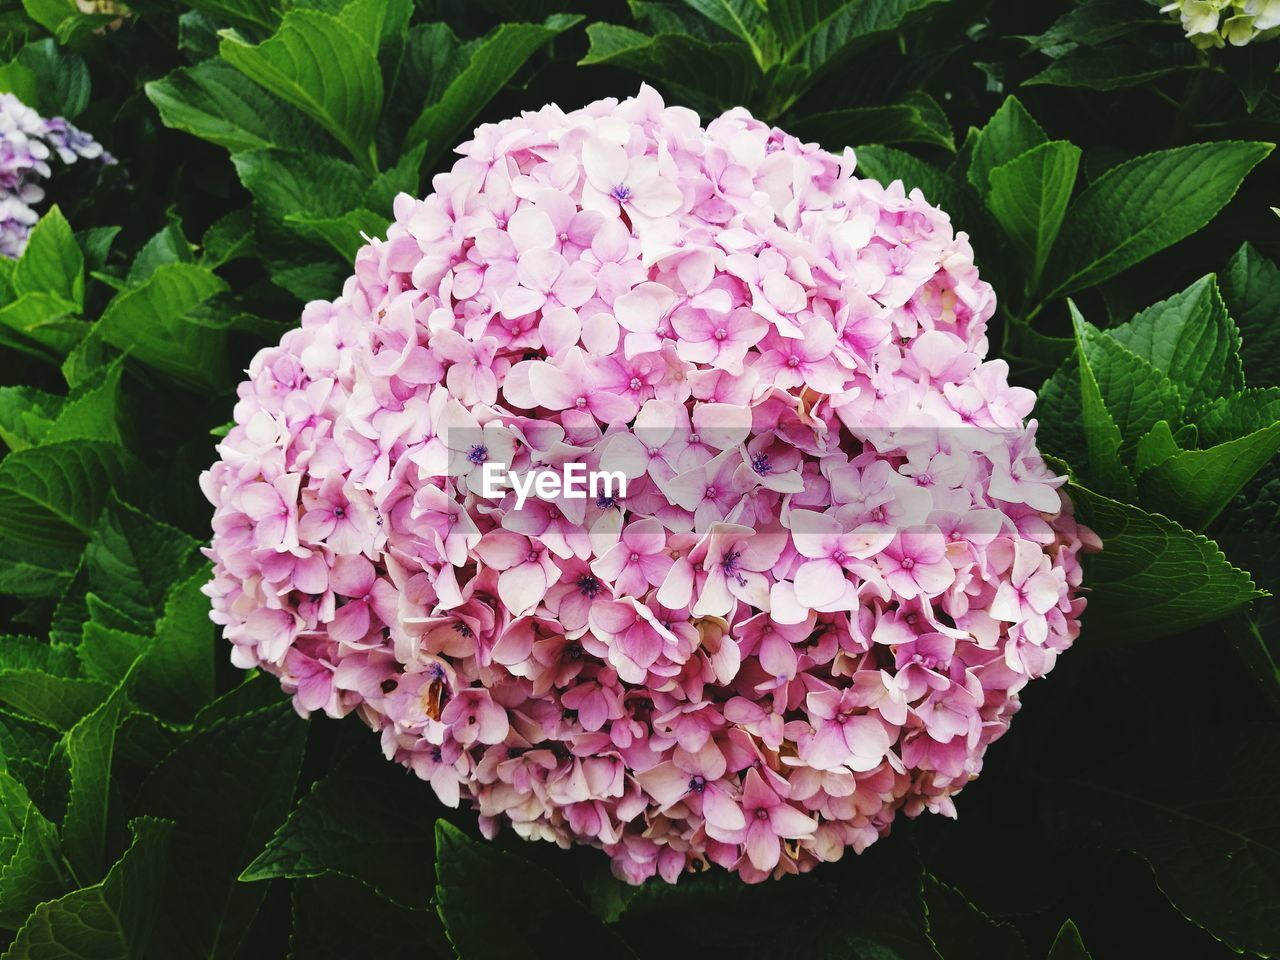 beauty in nature, flower, nature, growth, petal, plant, fragility, leaf, freshness, day, pink color, flower head, outdoors, blooming, no people, close-up